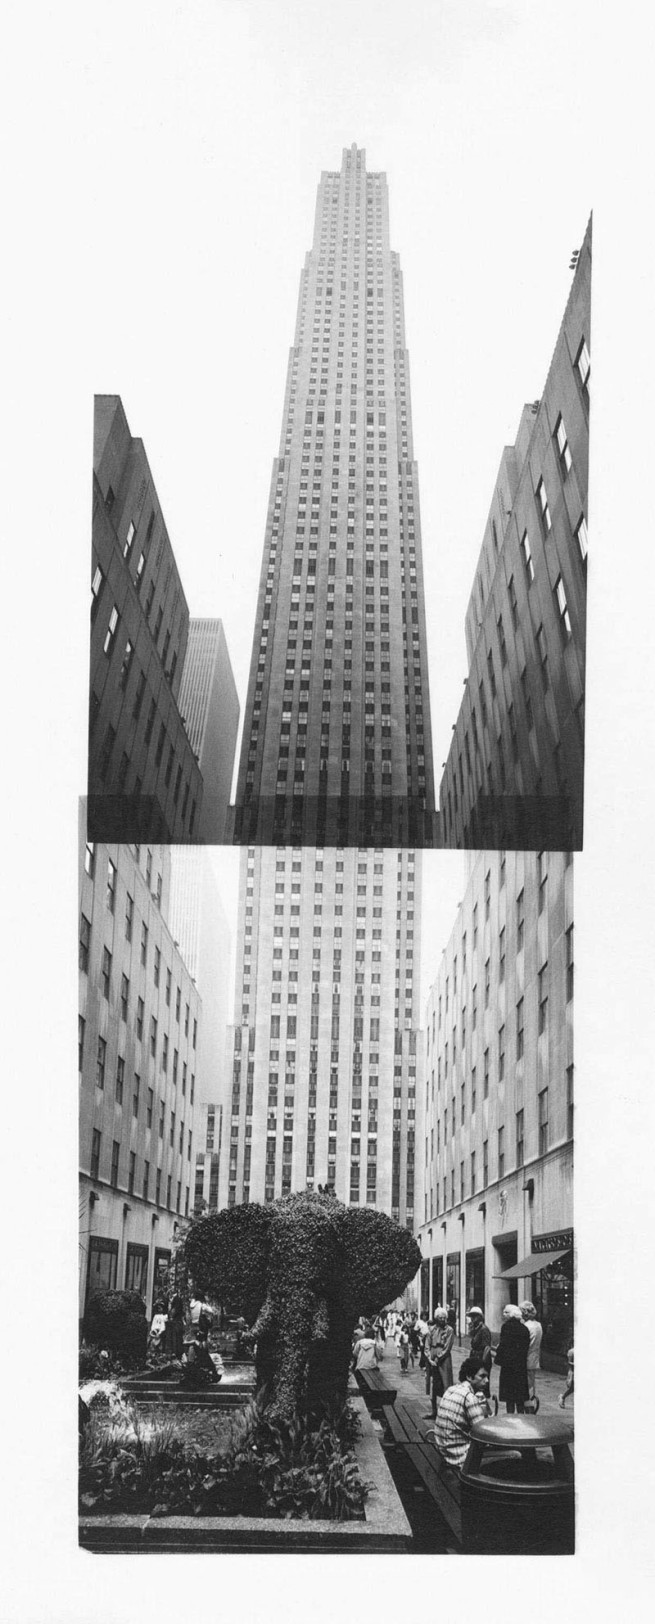 Andy Warhol (1928-1987) 'Rockefeller Center' c. 1984